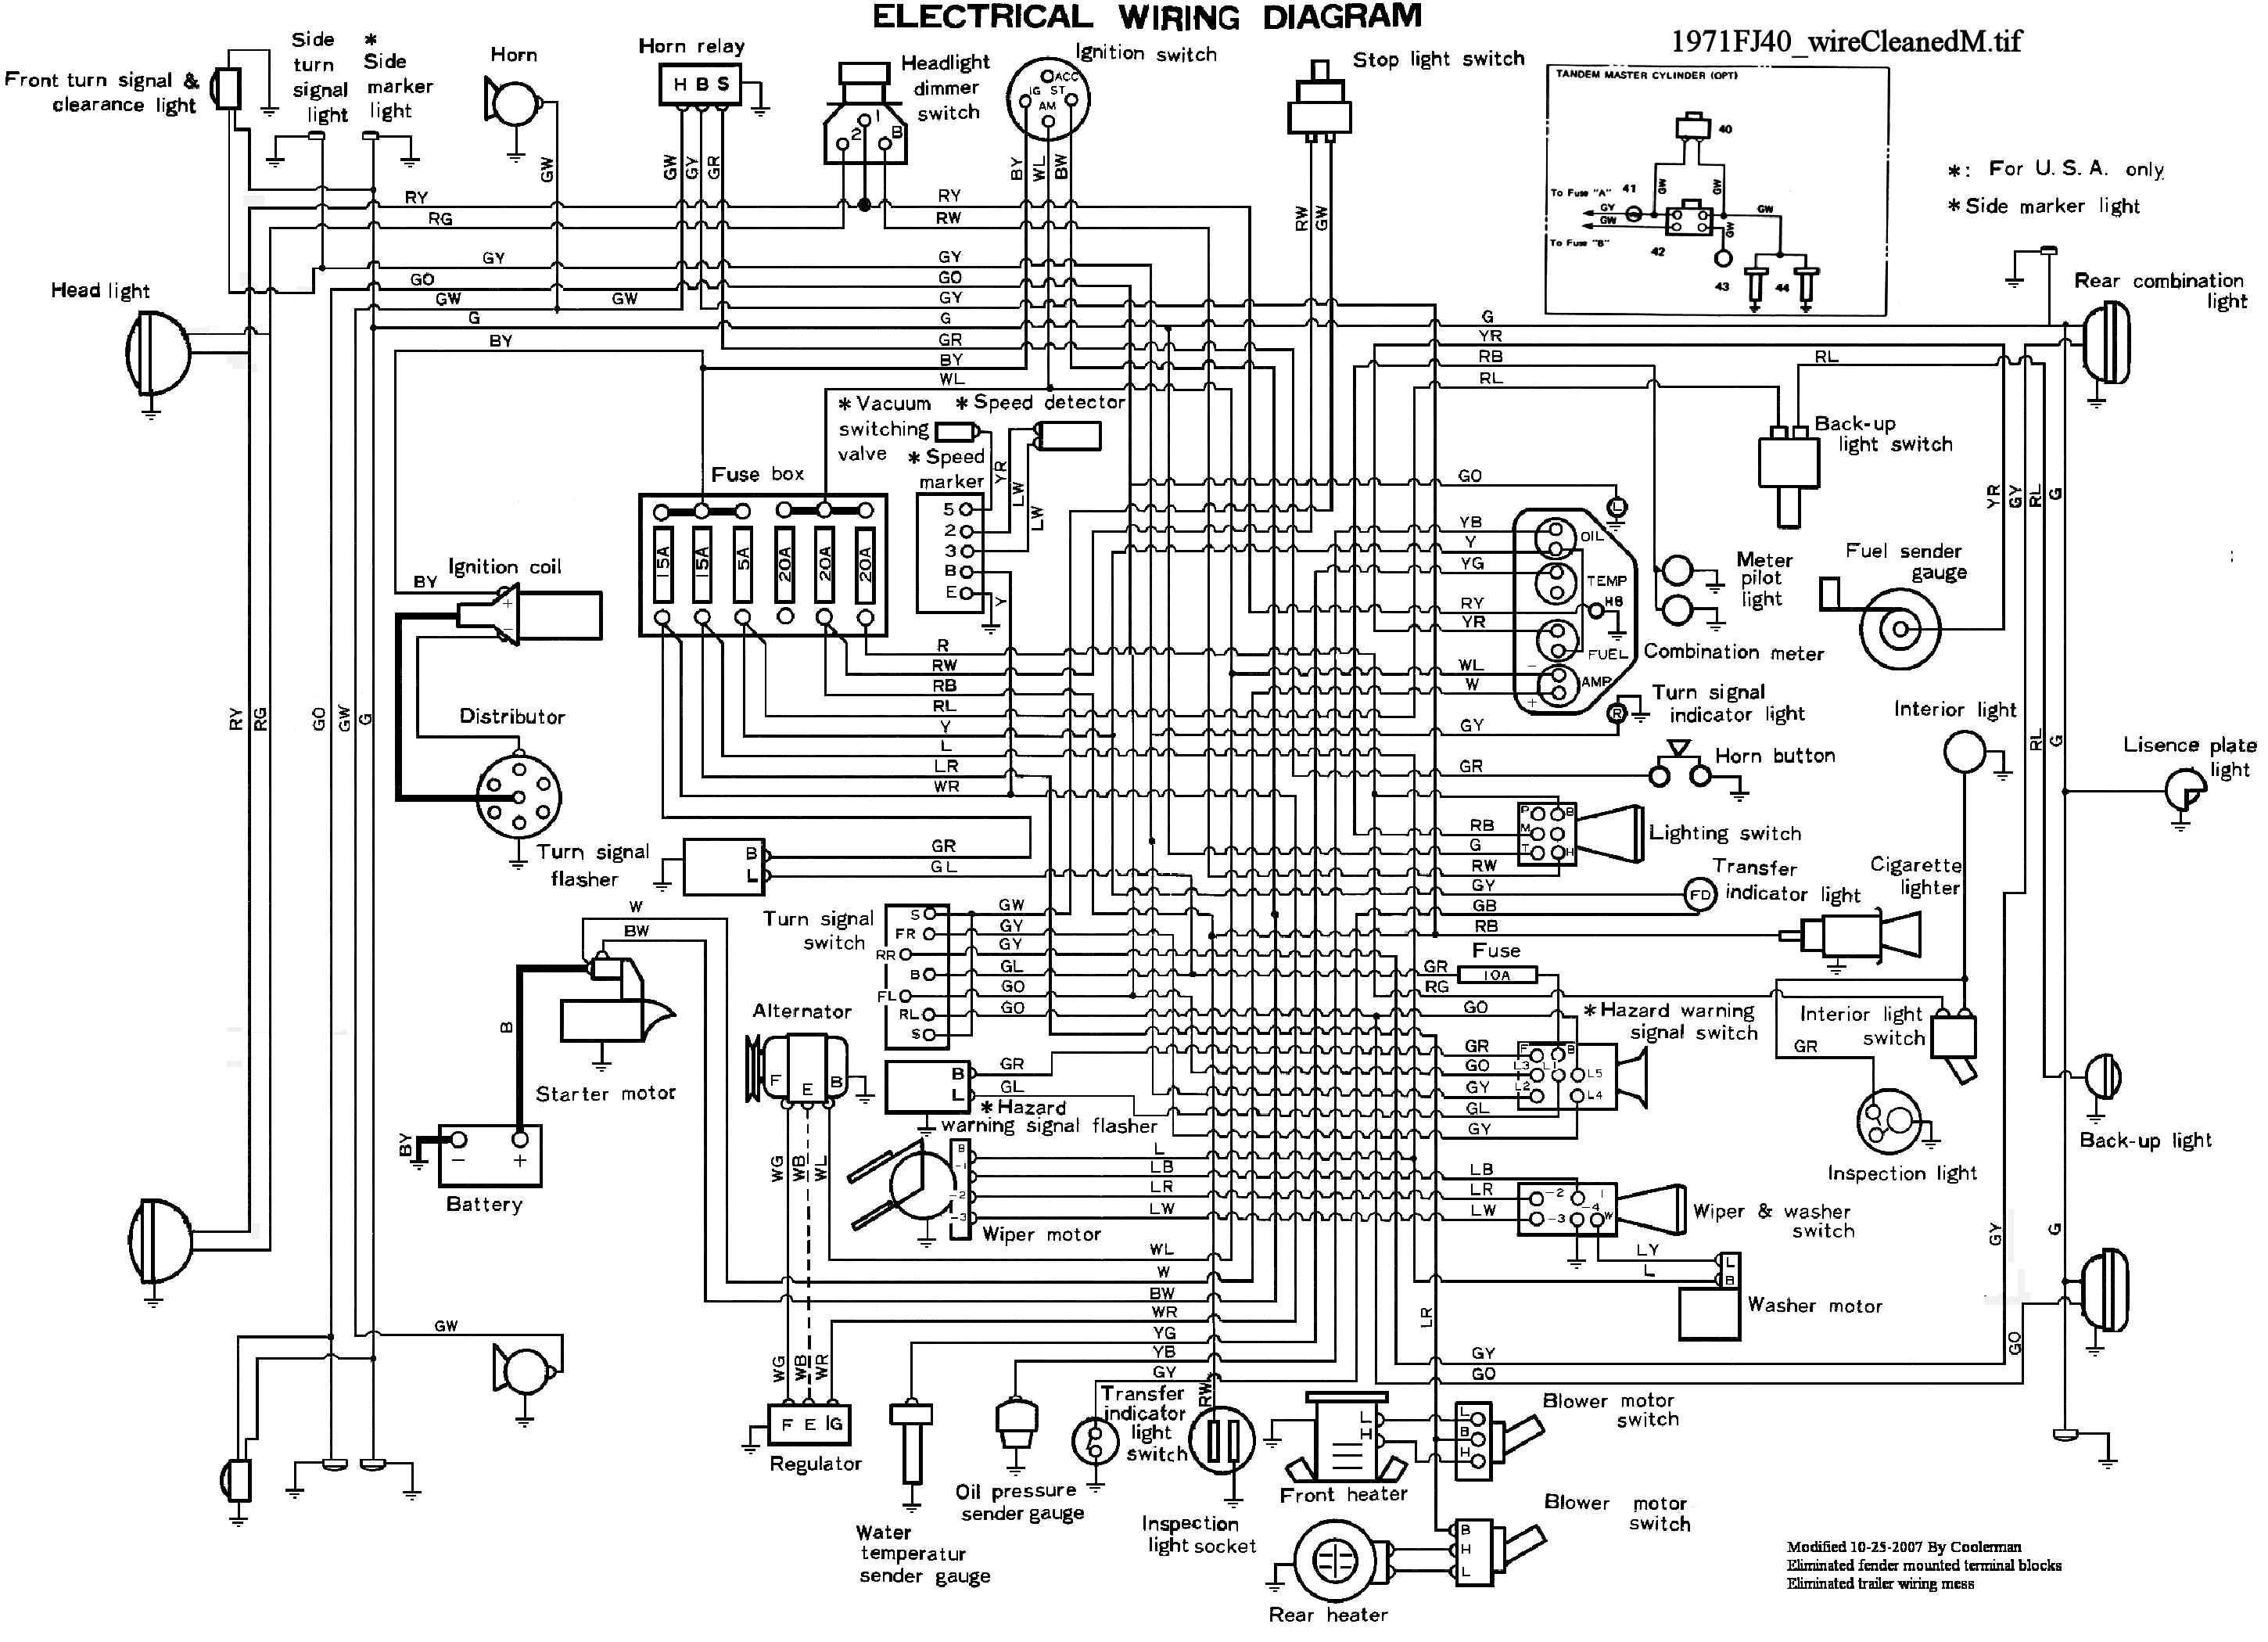 71fj40_wireCleanedM toyota a56811 wiring diagram toyota wiring diagrams instruction toyota tamaraw fx electrical wiring diagram at alyssarenee.co